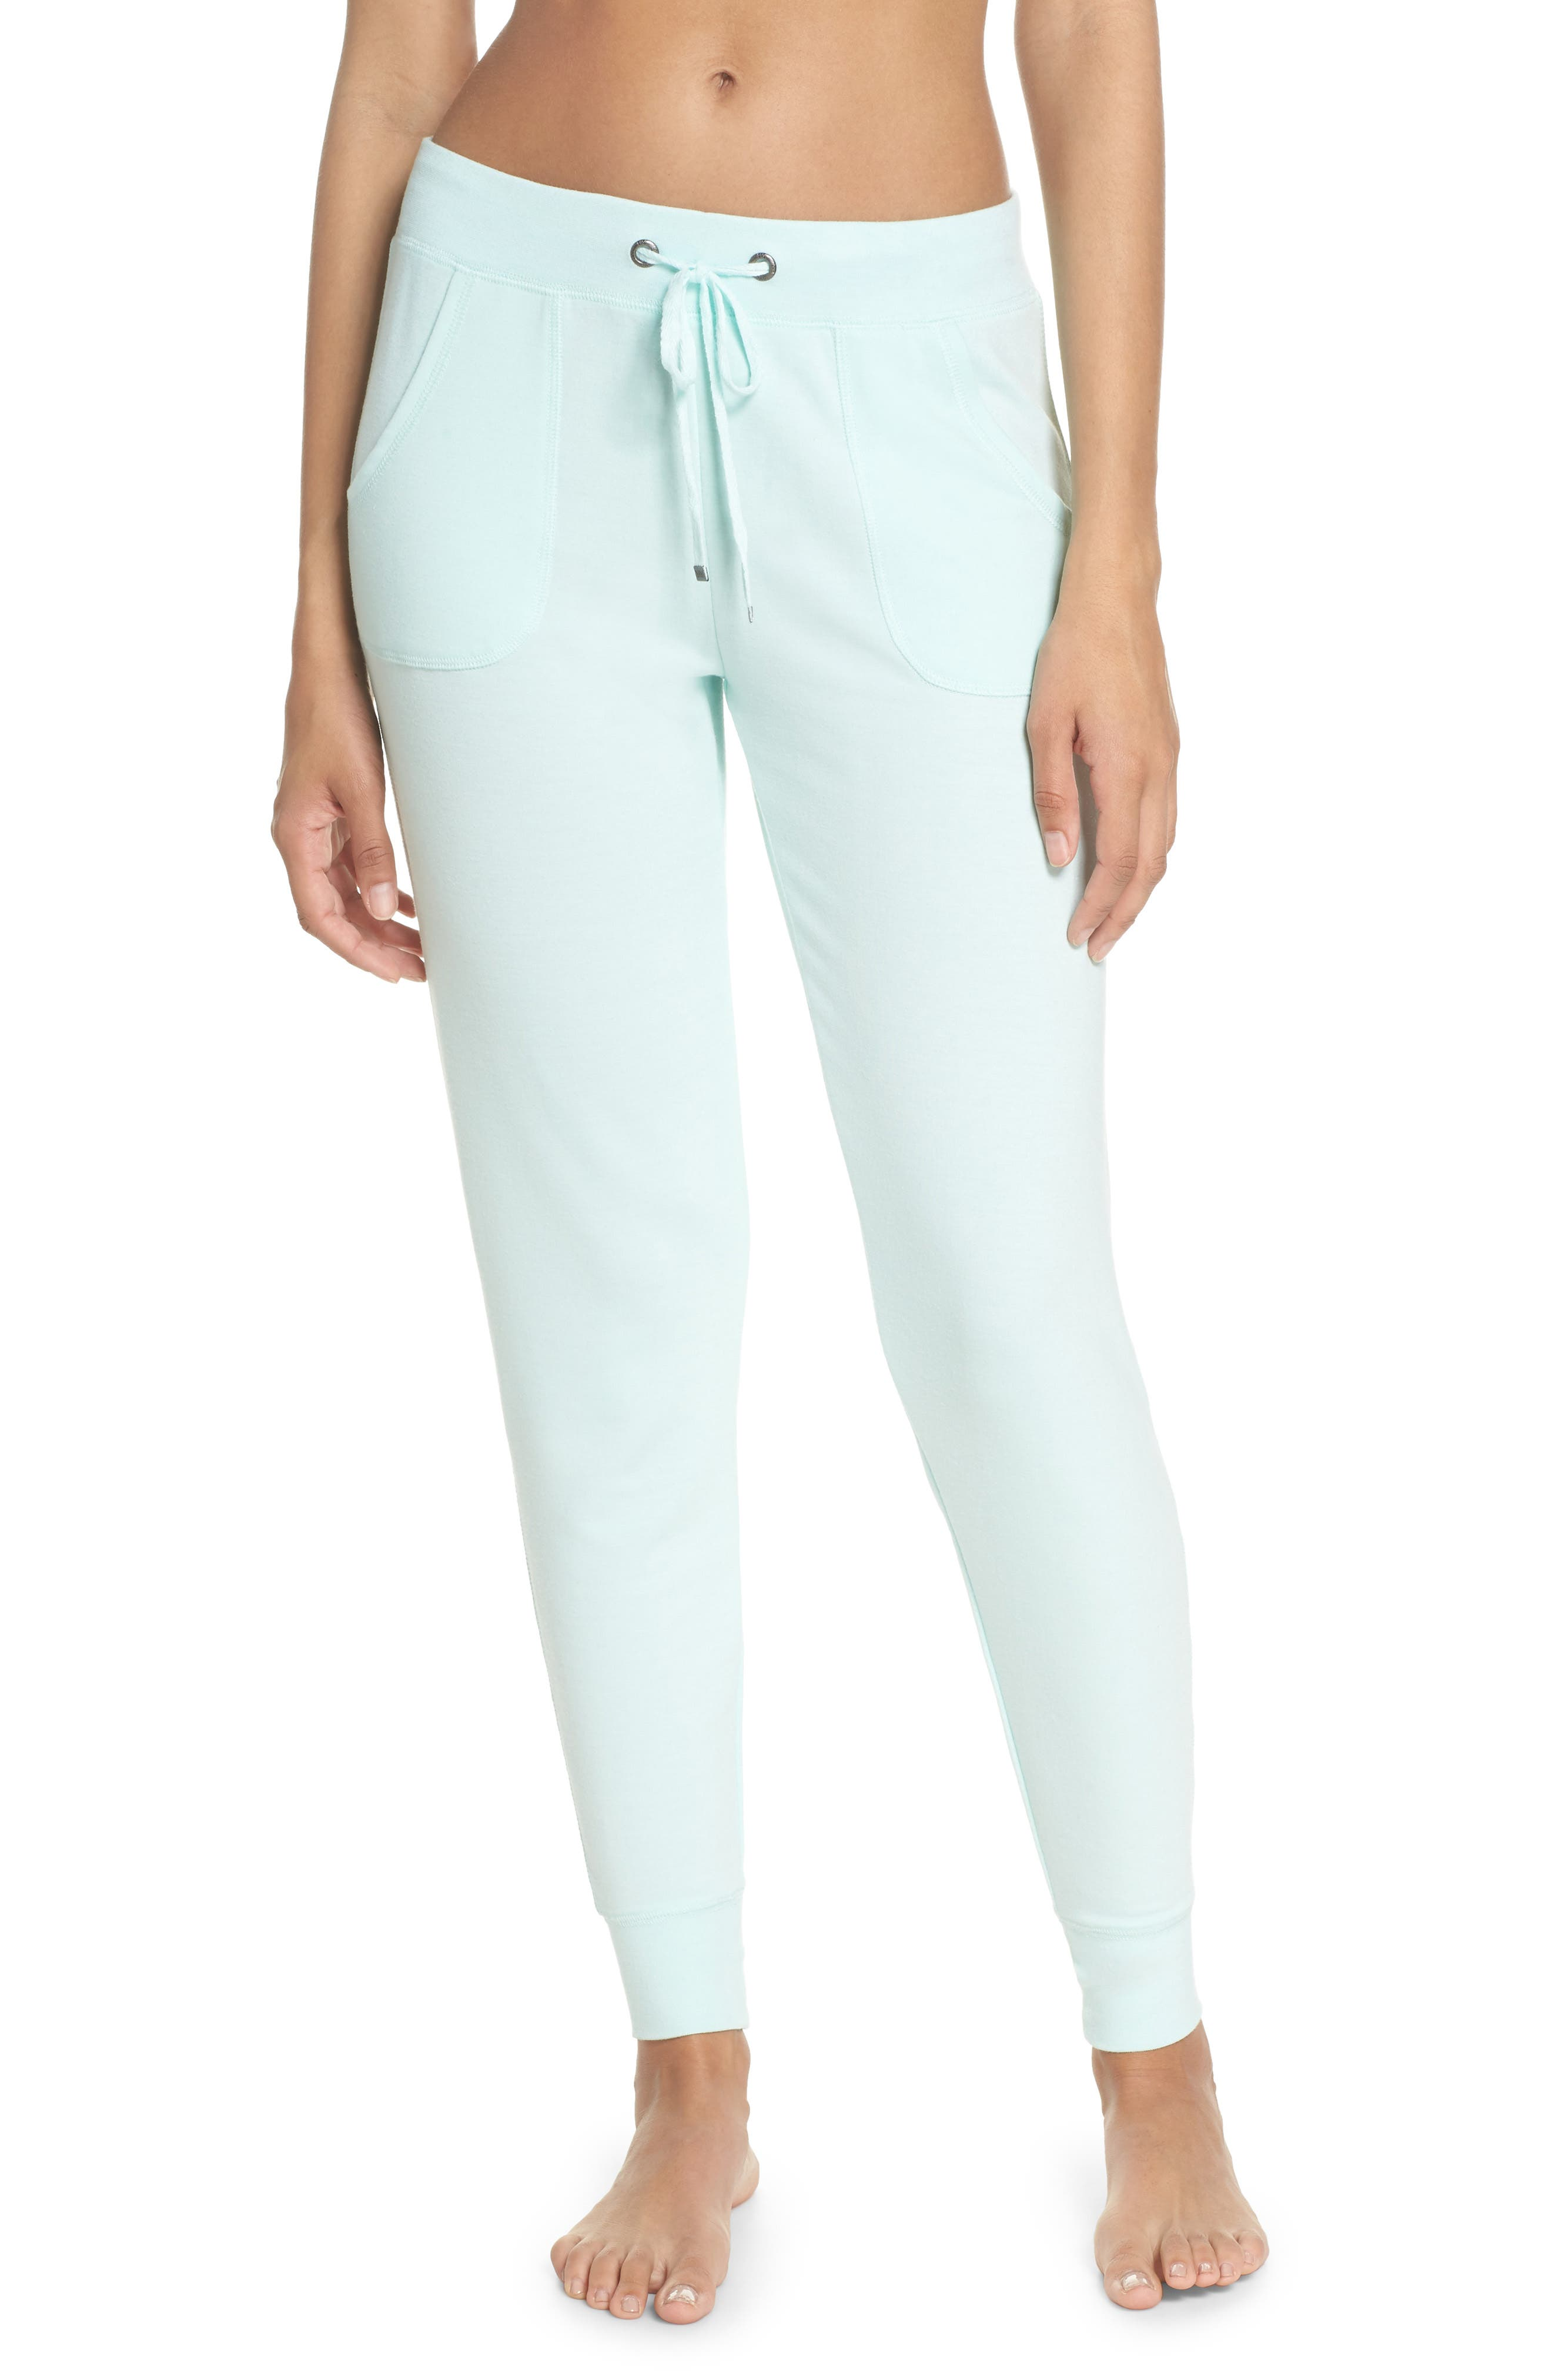 All About It Lounge Pants,                             Main thumbnail 3, color,